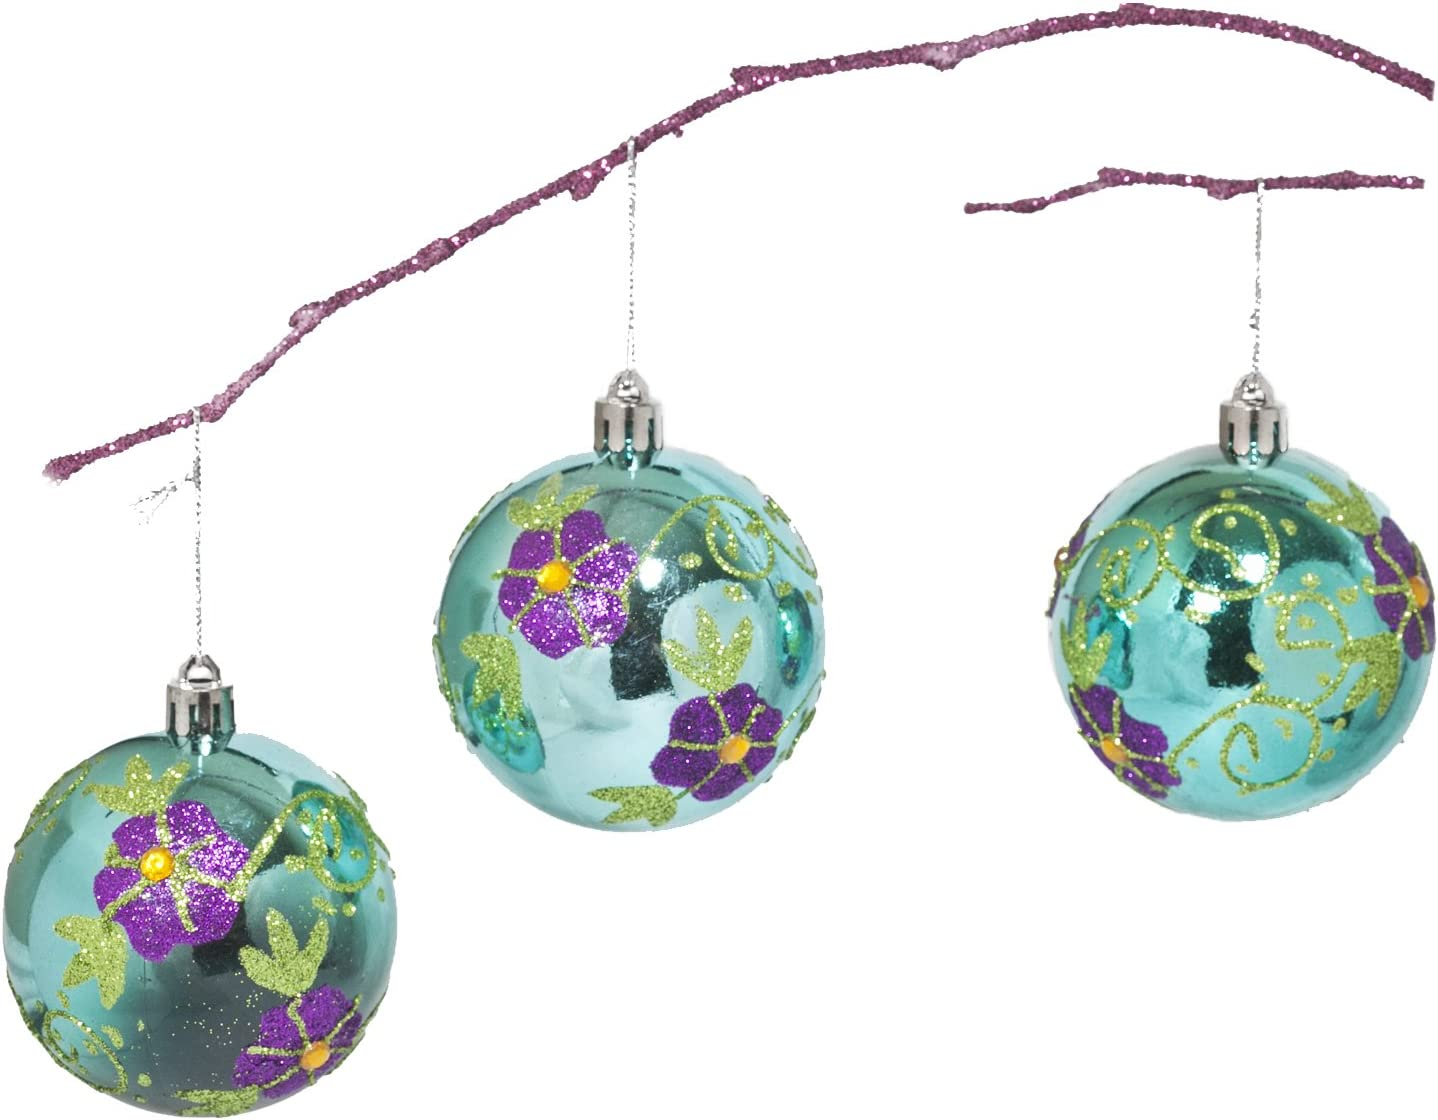 Perfect Holiday Handpainted 3 Piece Shatterproof Christmas Ornament Set 2 75 Inch Lake Blue Ball With Flowers And Acrylic Diamond Home Kitchen